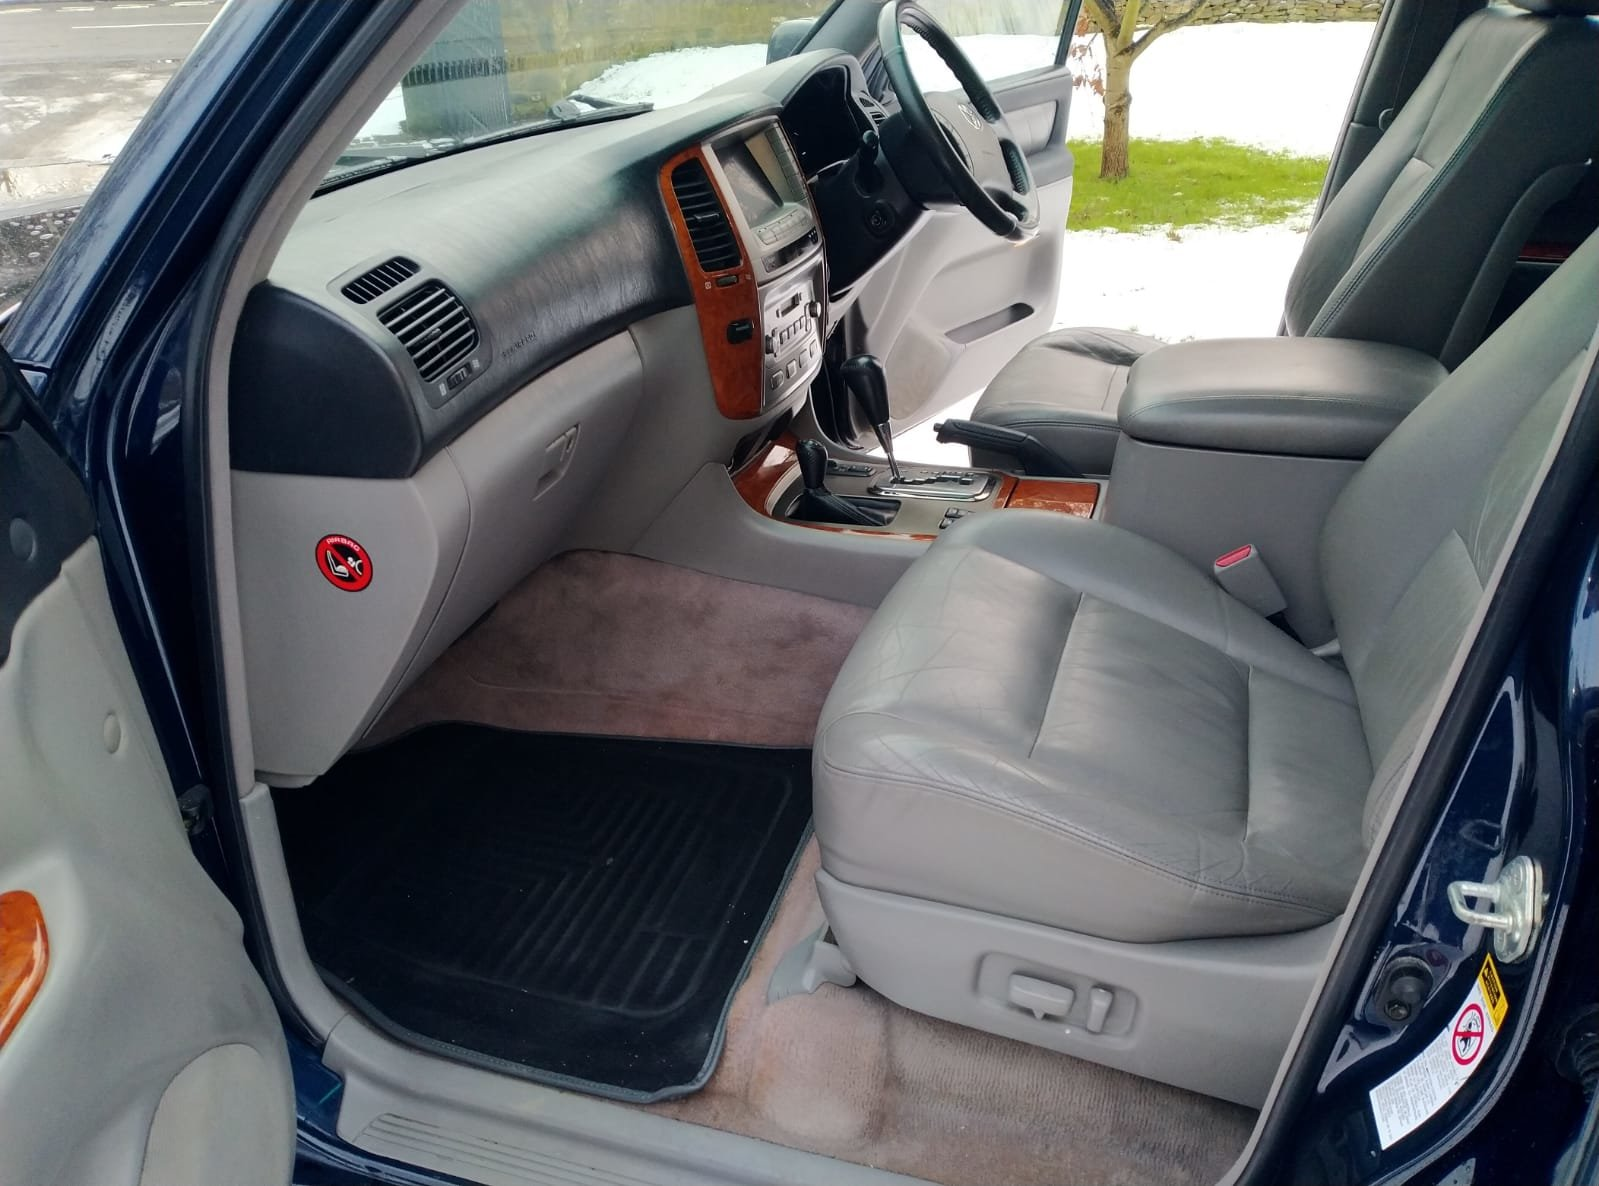 2004 Toyota Land cruiser Amazon TD 4.2 Auto For Sale (picture 8 of 12)